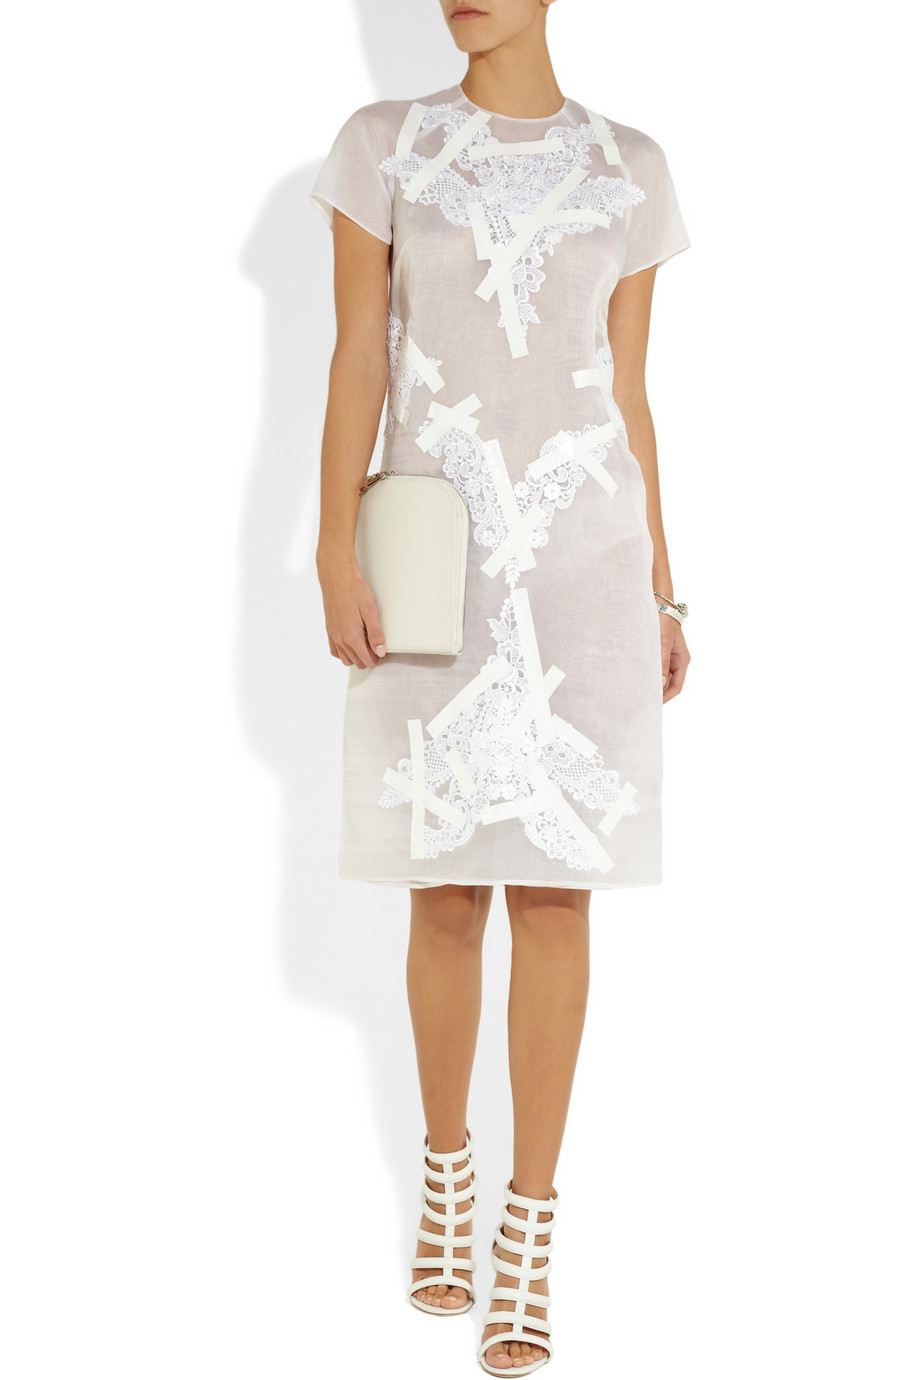 Christopher Kane Dress Christopher Kane Lace Dress